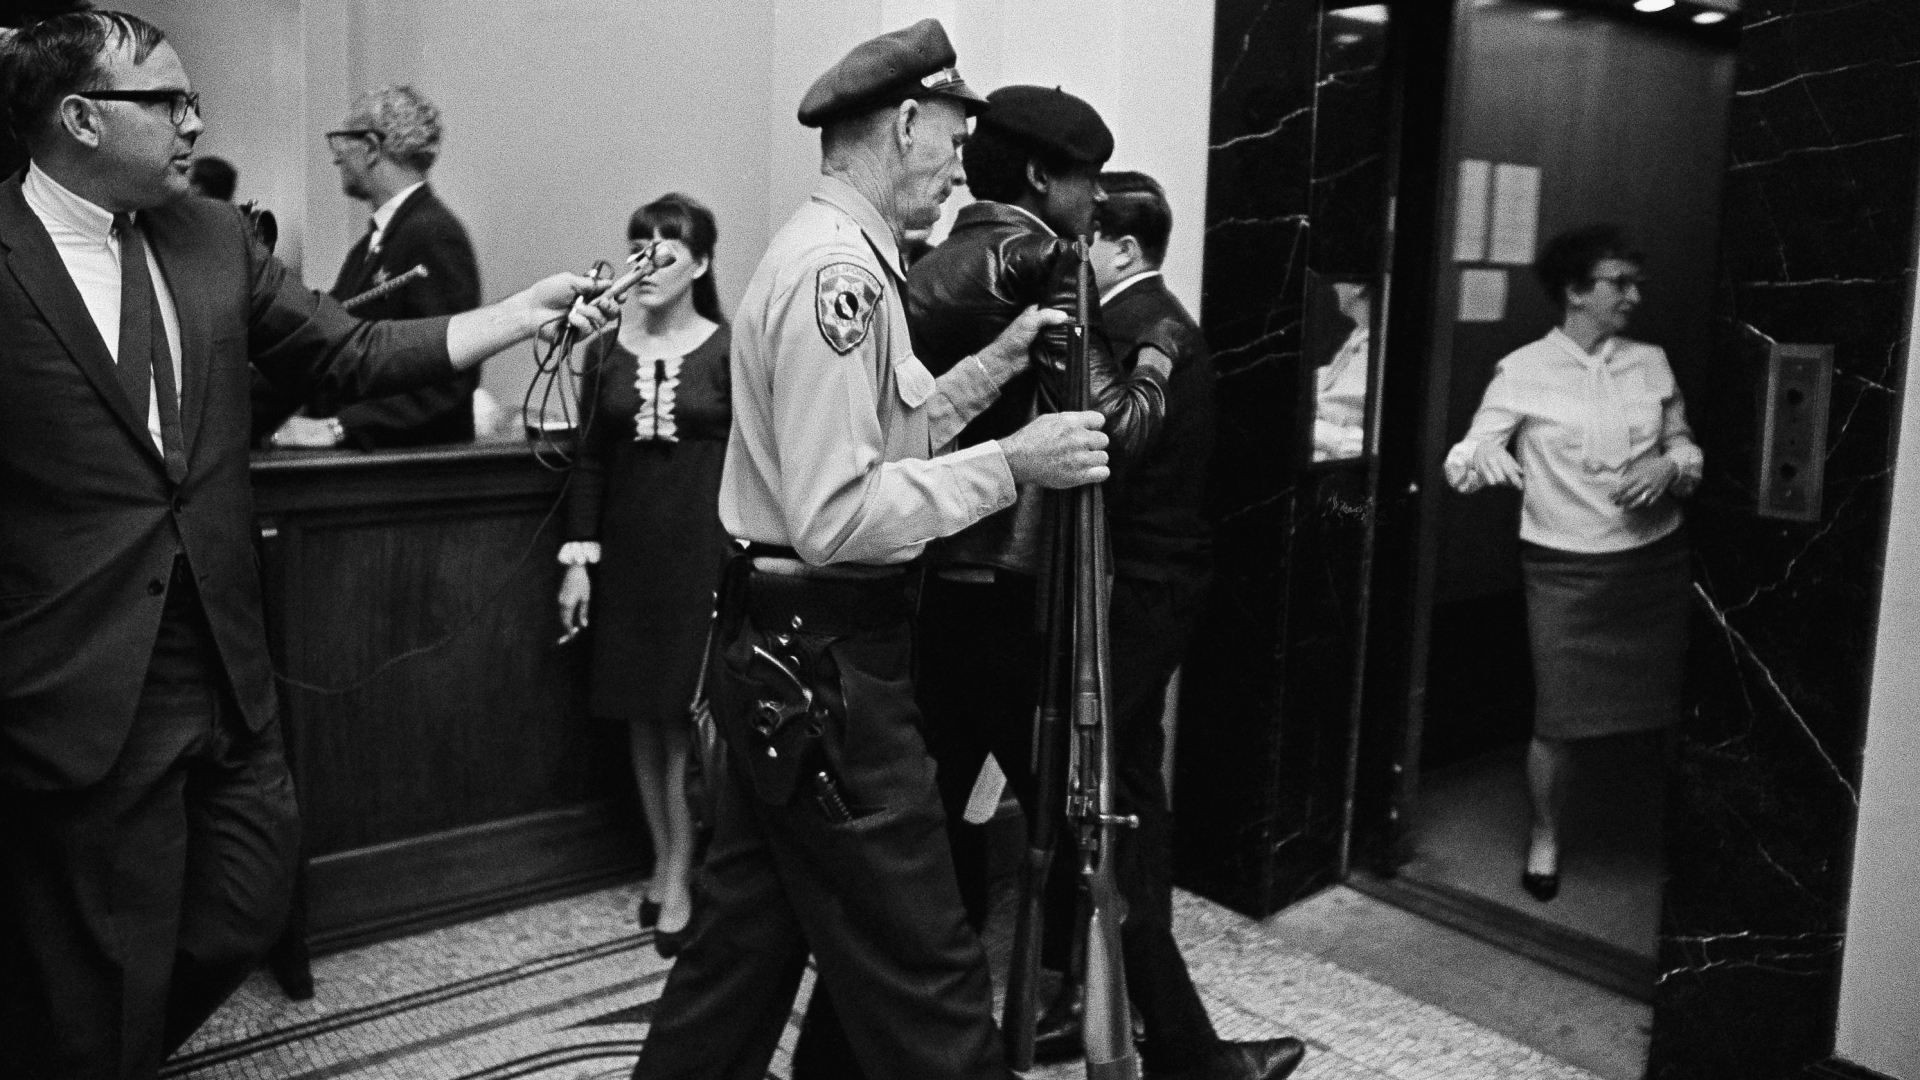 A California State Policeman escorting a member of the Black Panther Party down the corridor of the Capitol in Sacramento, 1967. (Credit: AP Photo )